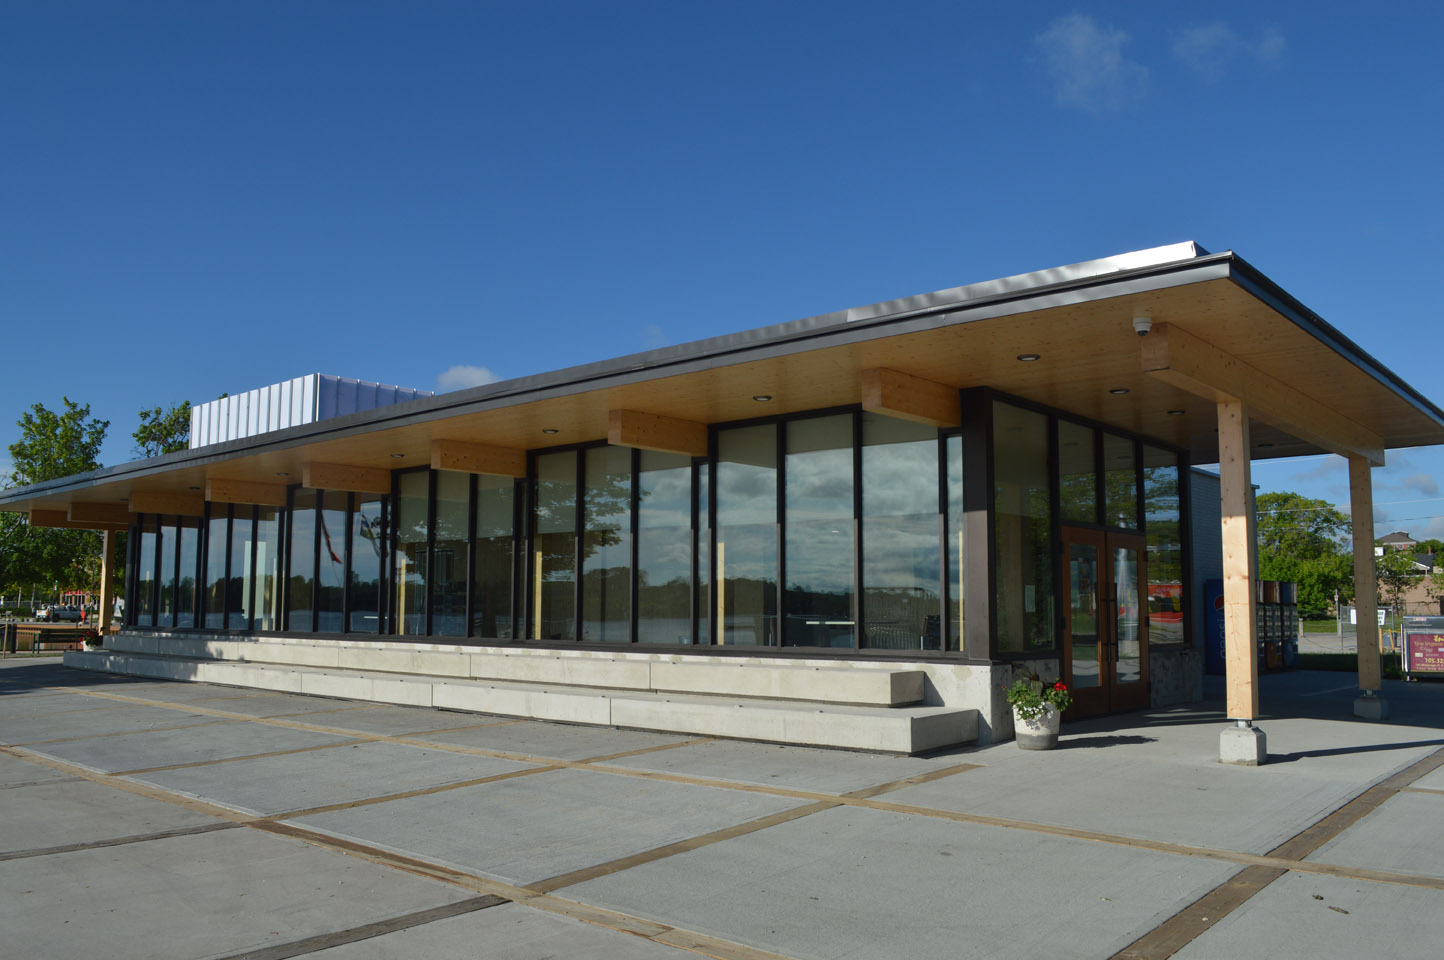 View of Port of Orillia Building from Outside